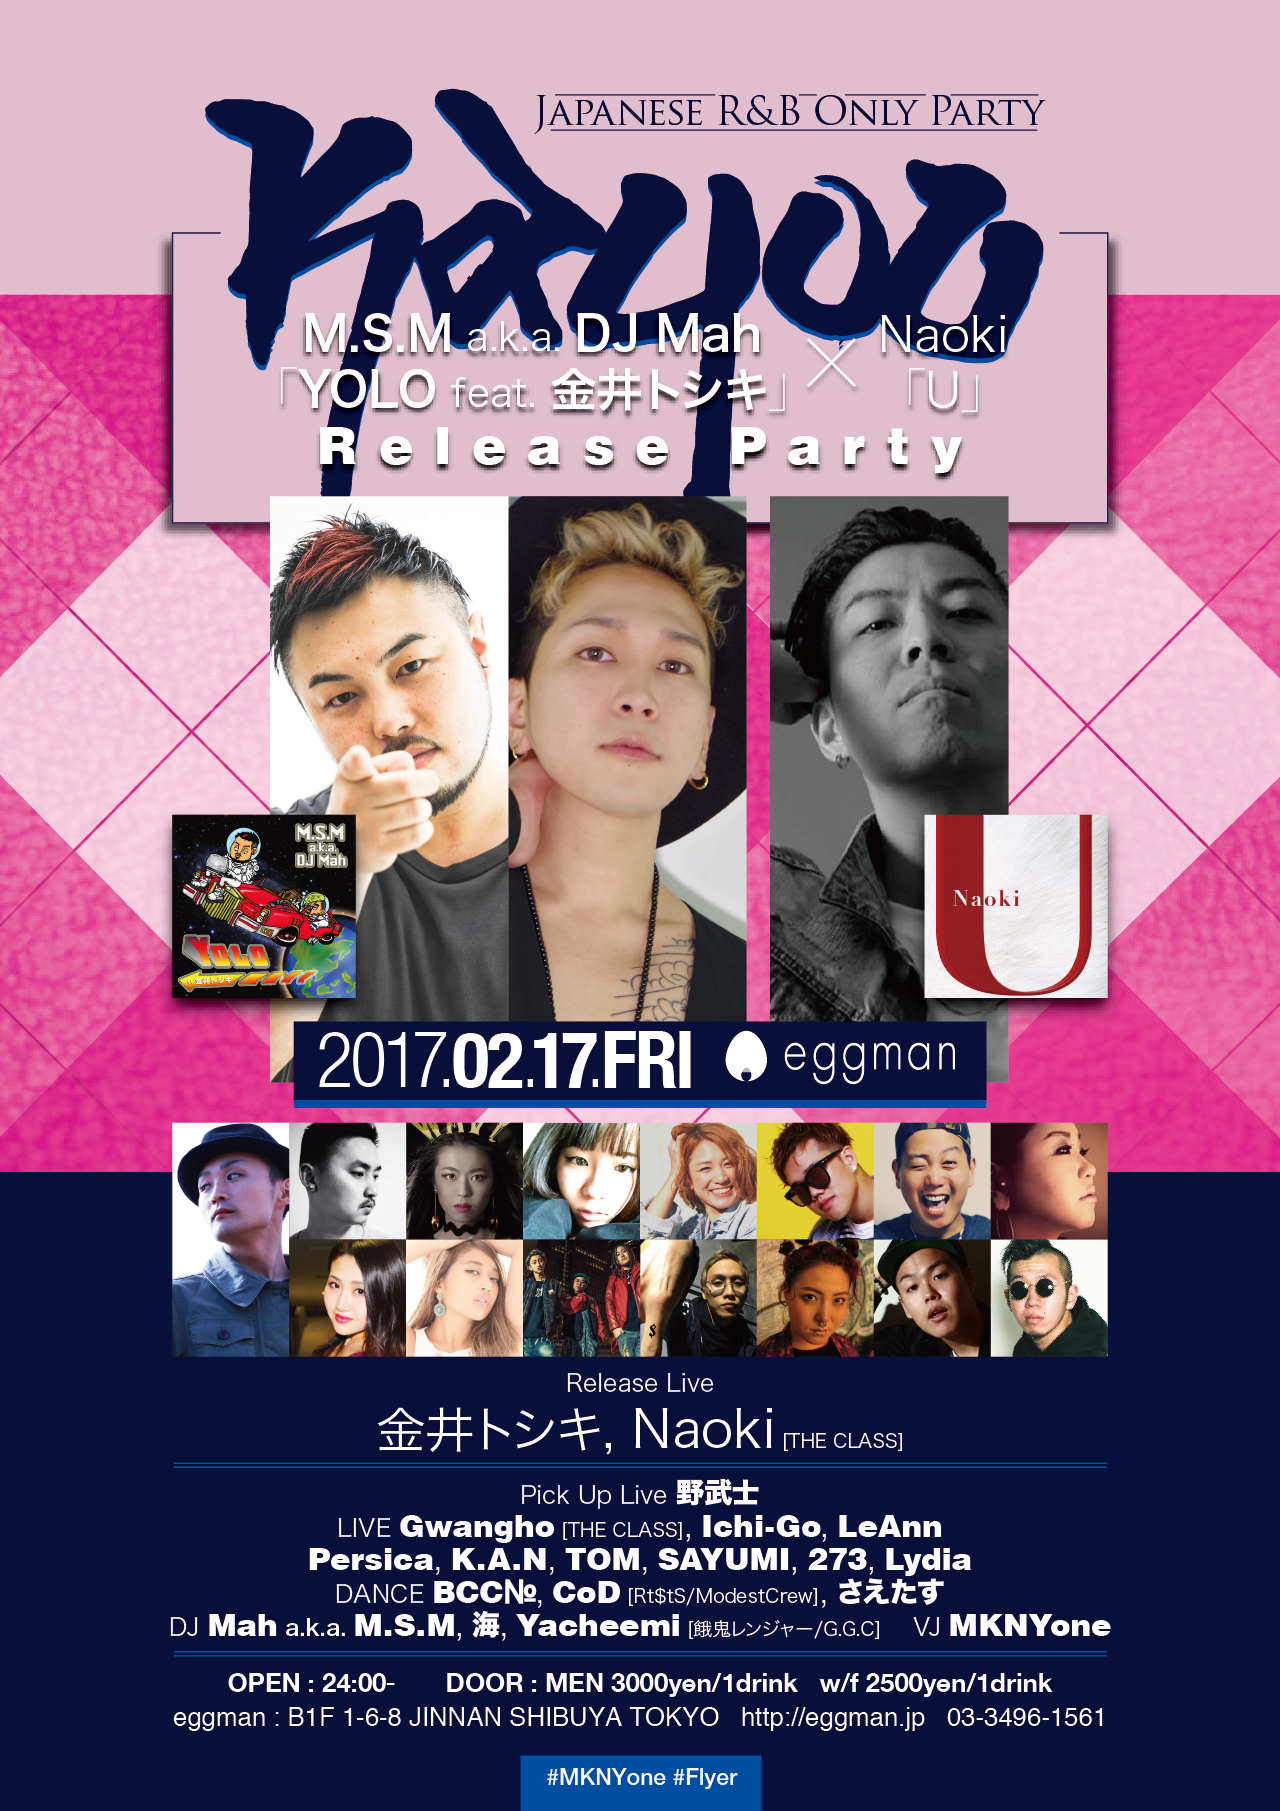 KAYOU ~JAPANESE R&B ONLY PARTY~<br>M.S.M a.k.a. DJ Mah『YOLO feat. 金井トシキ』× Naoki『U』Release Party